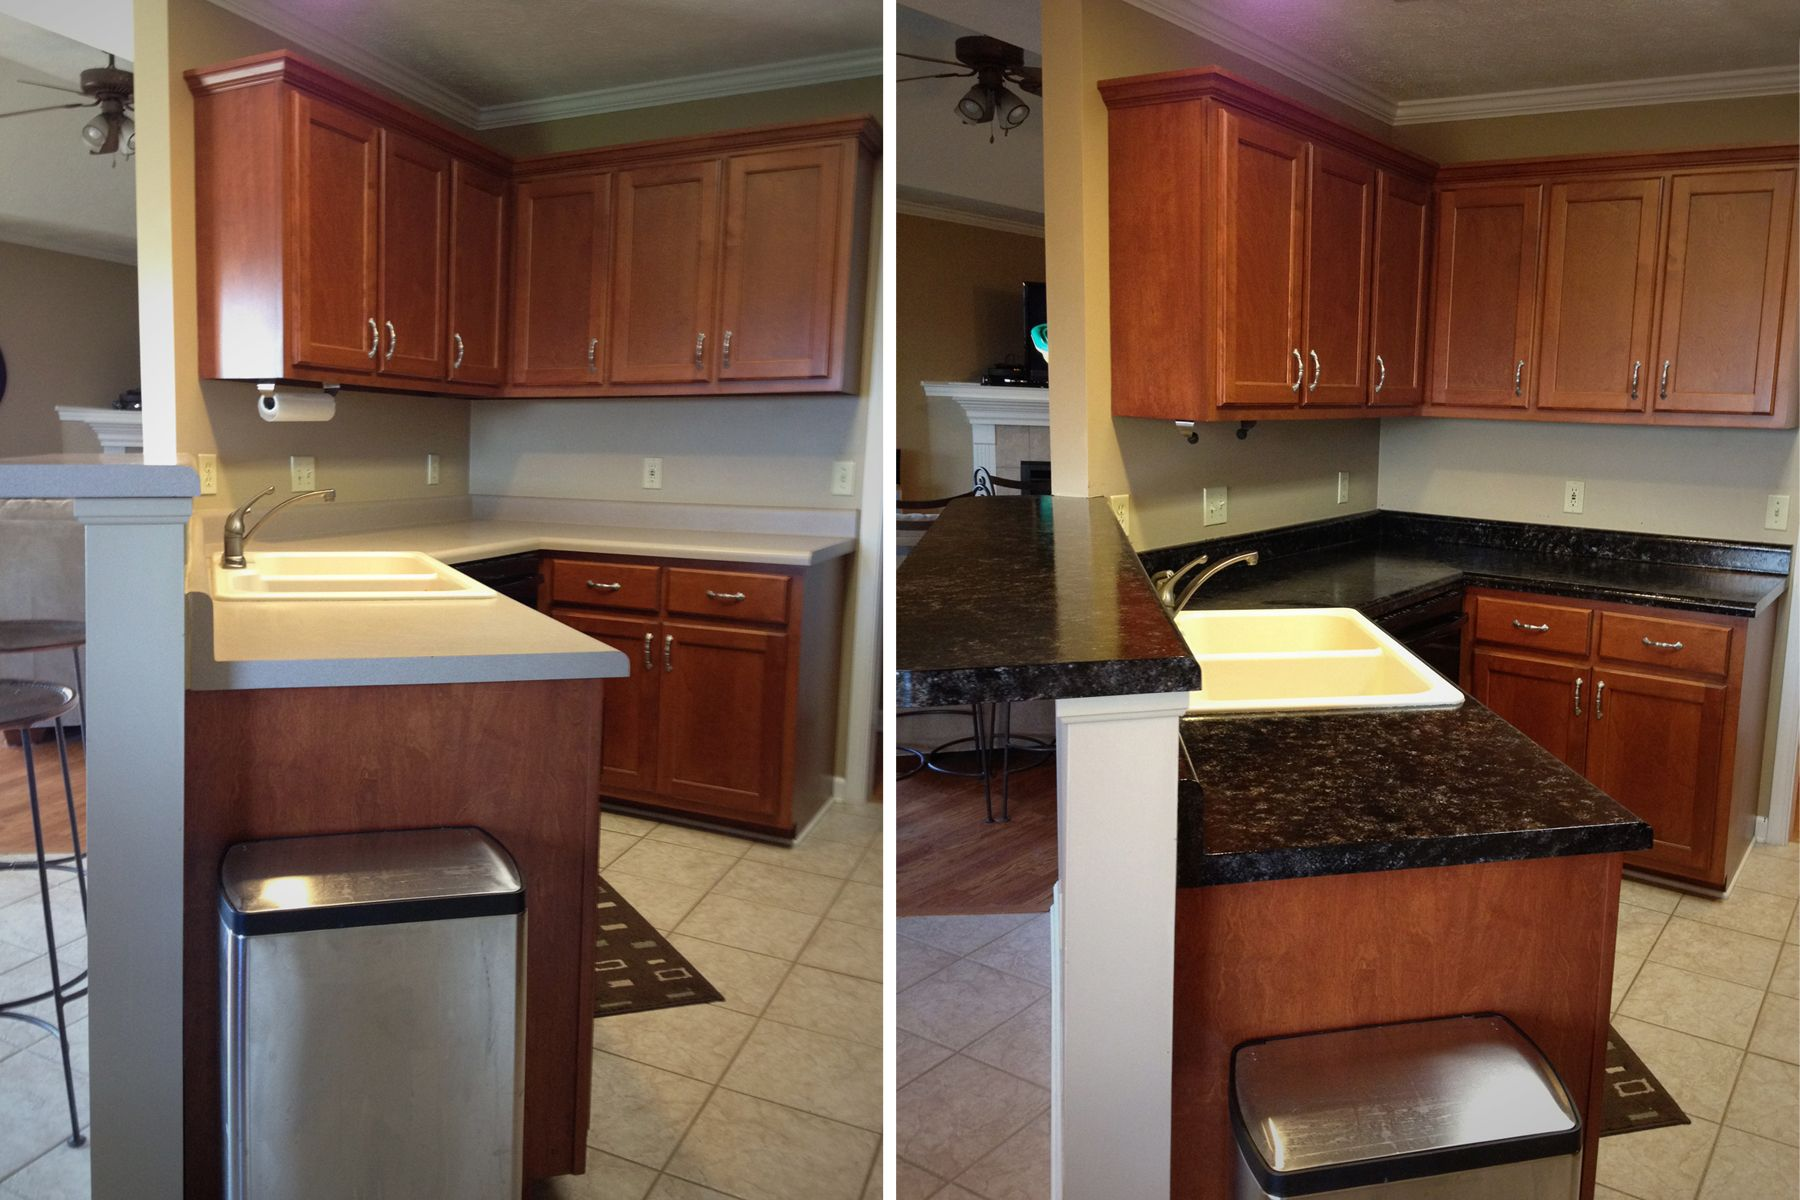 DIY faux granite countertops. I was tired of my Formica counters and replaced them for less than $100 by painting them!